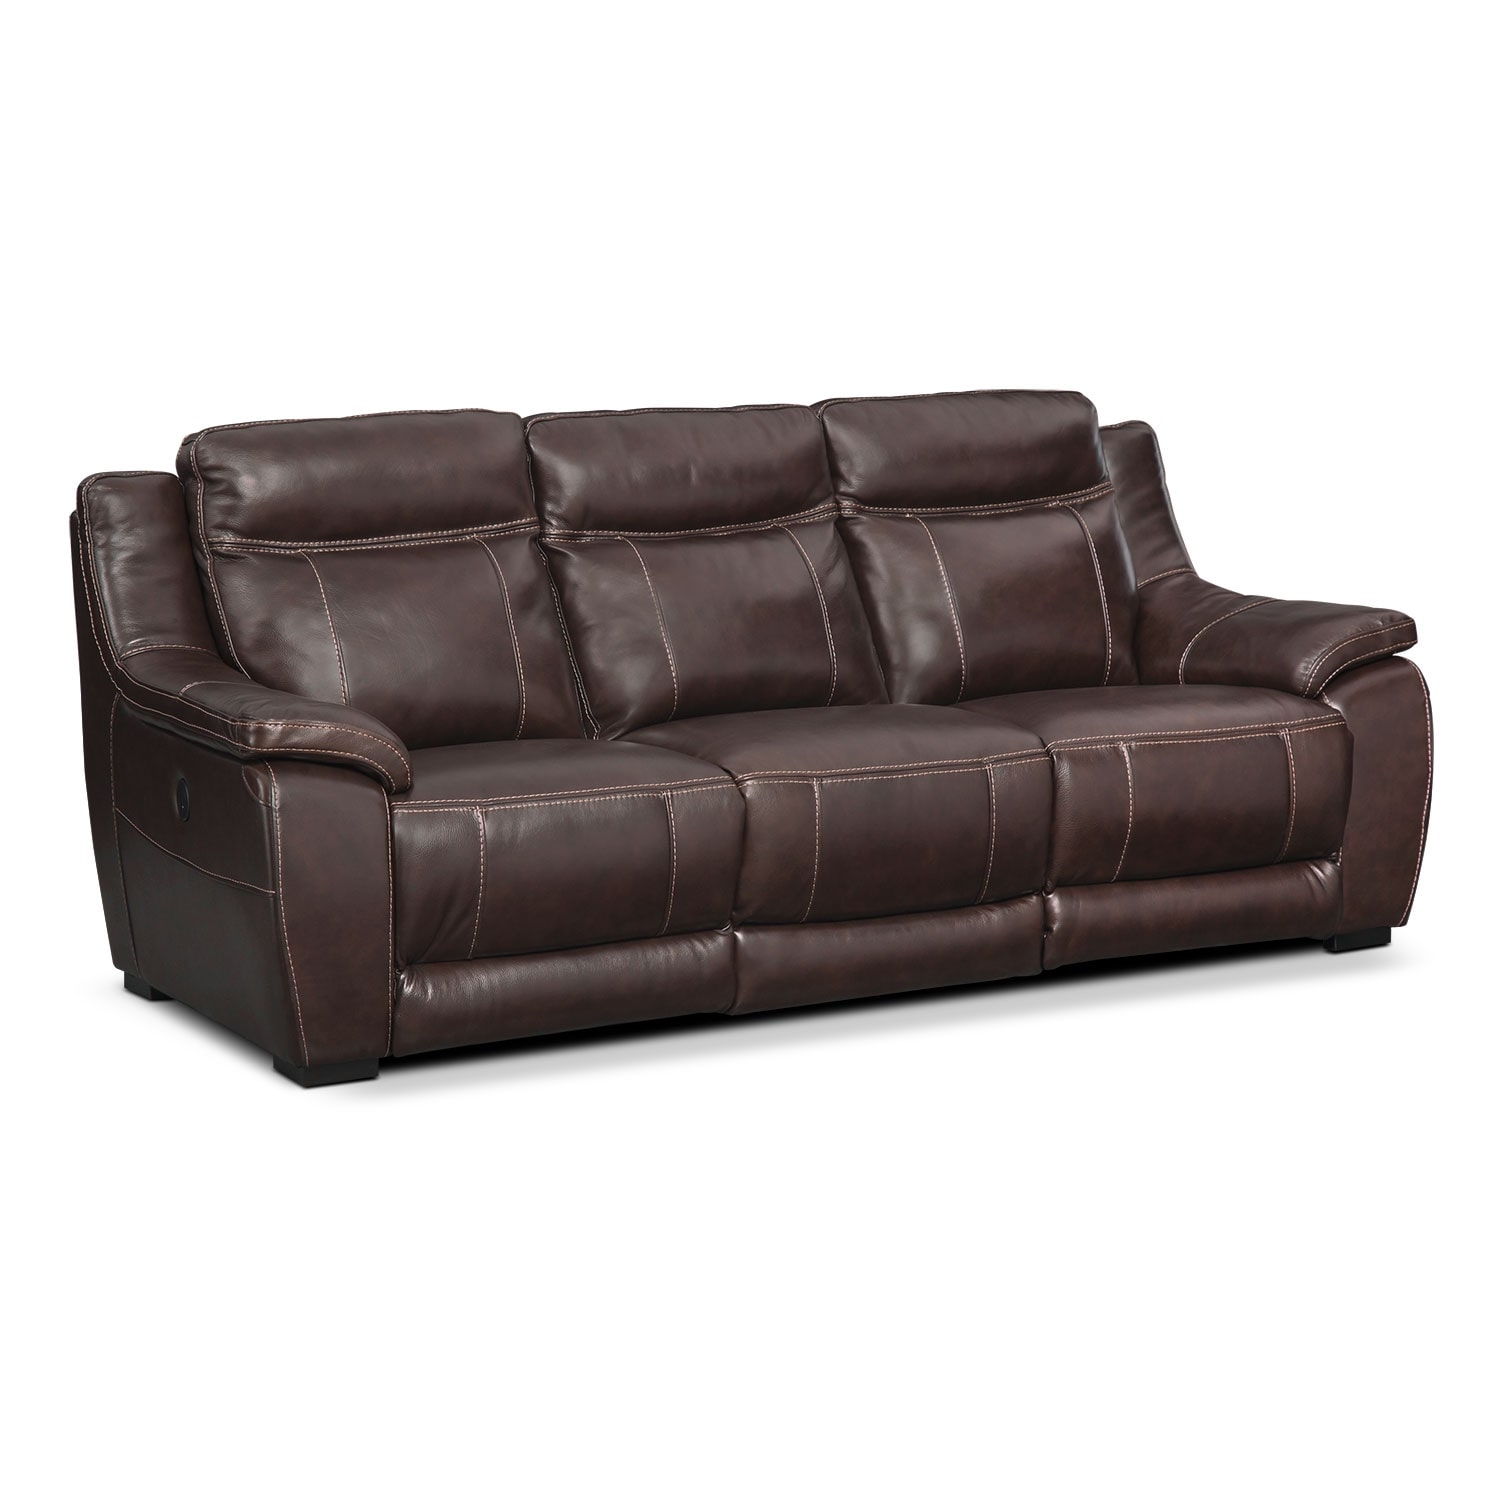 Sofas Leather Living Room Furniture